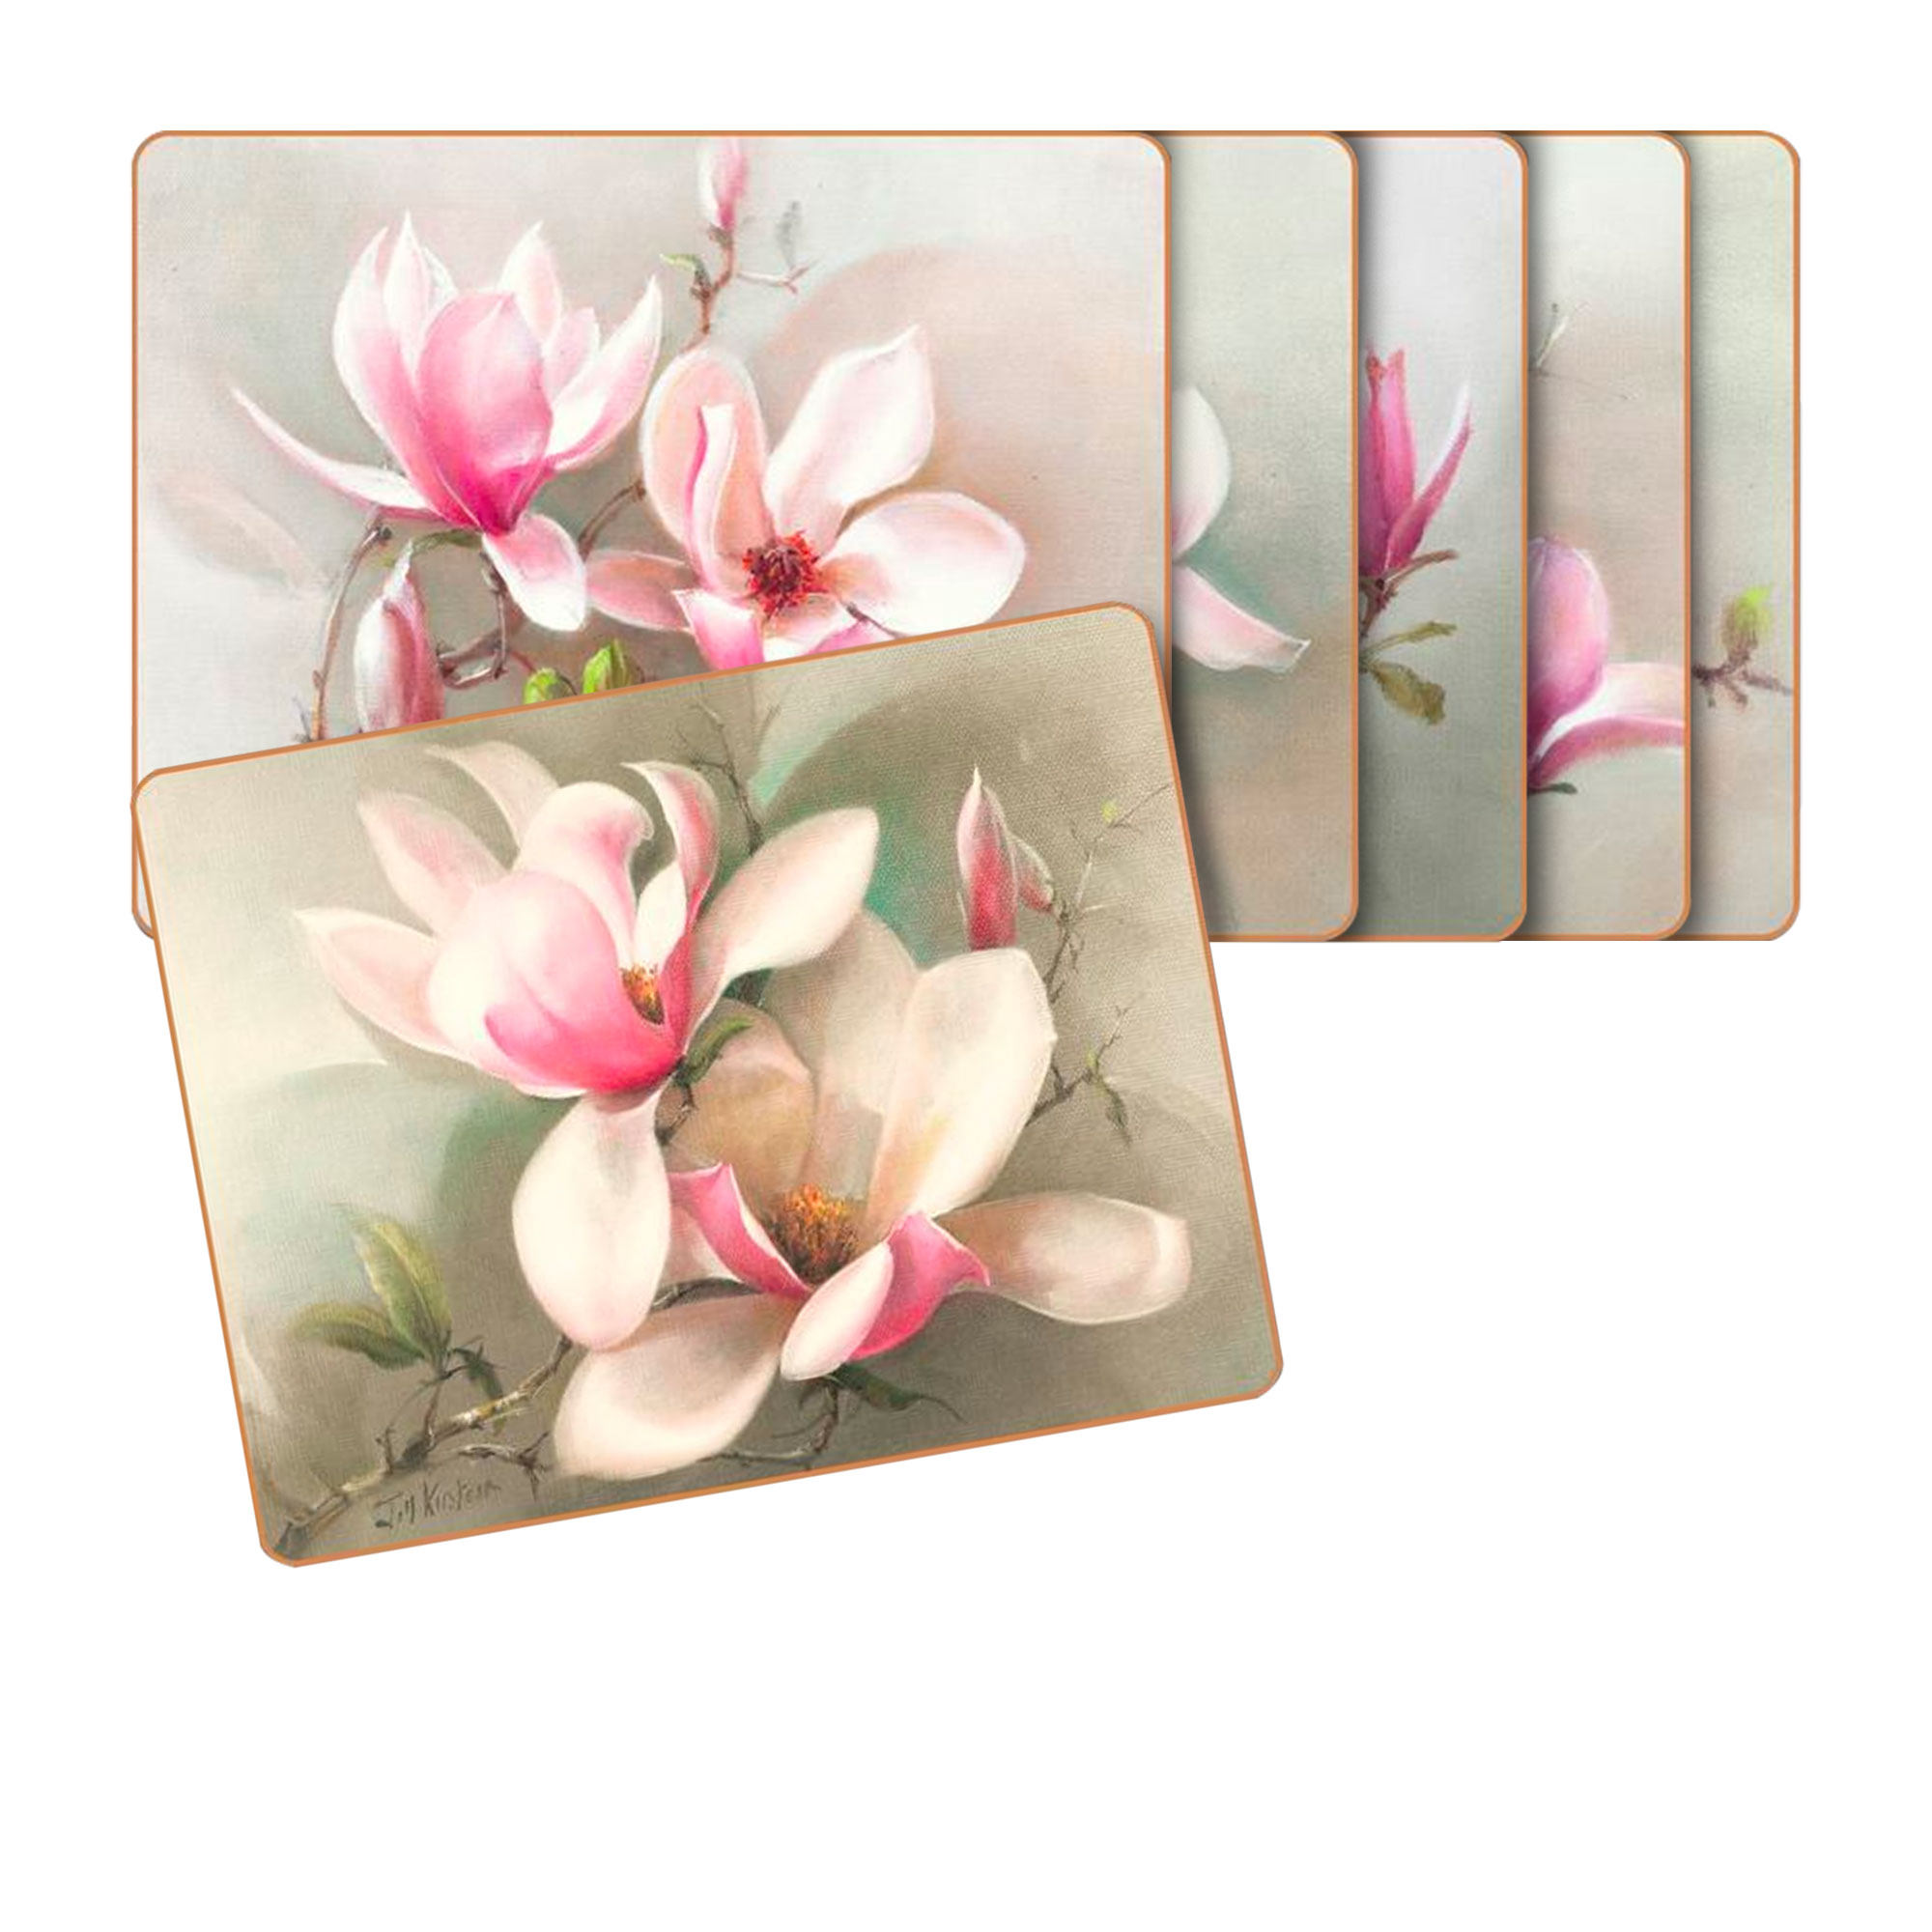 Cinnamon 6pc Magnolias Placemat Set 34x26.5cm